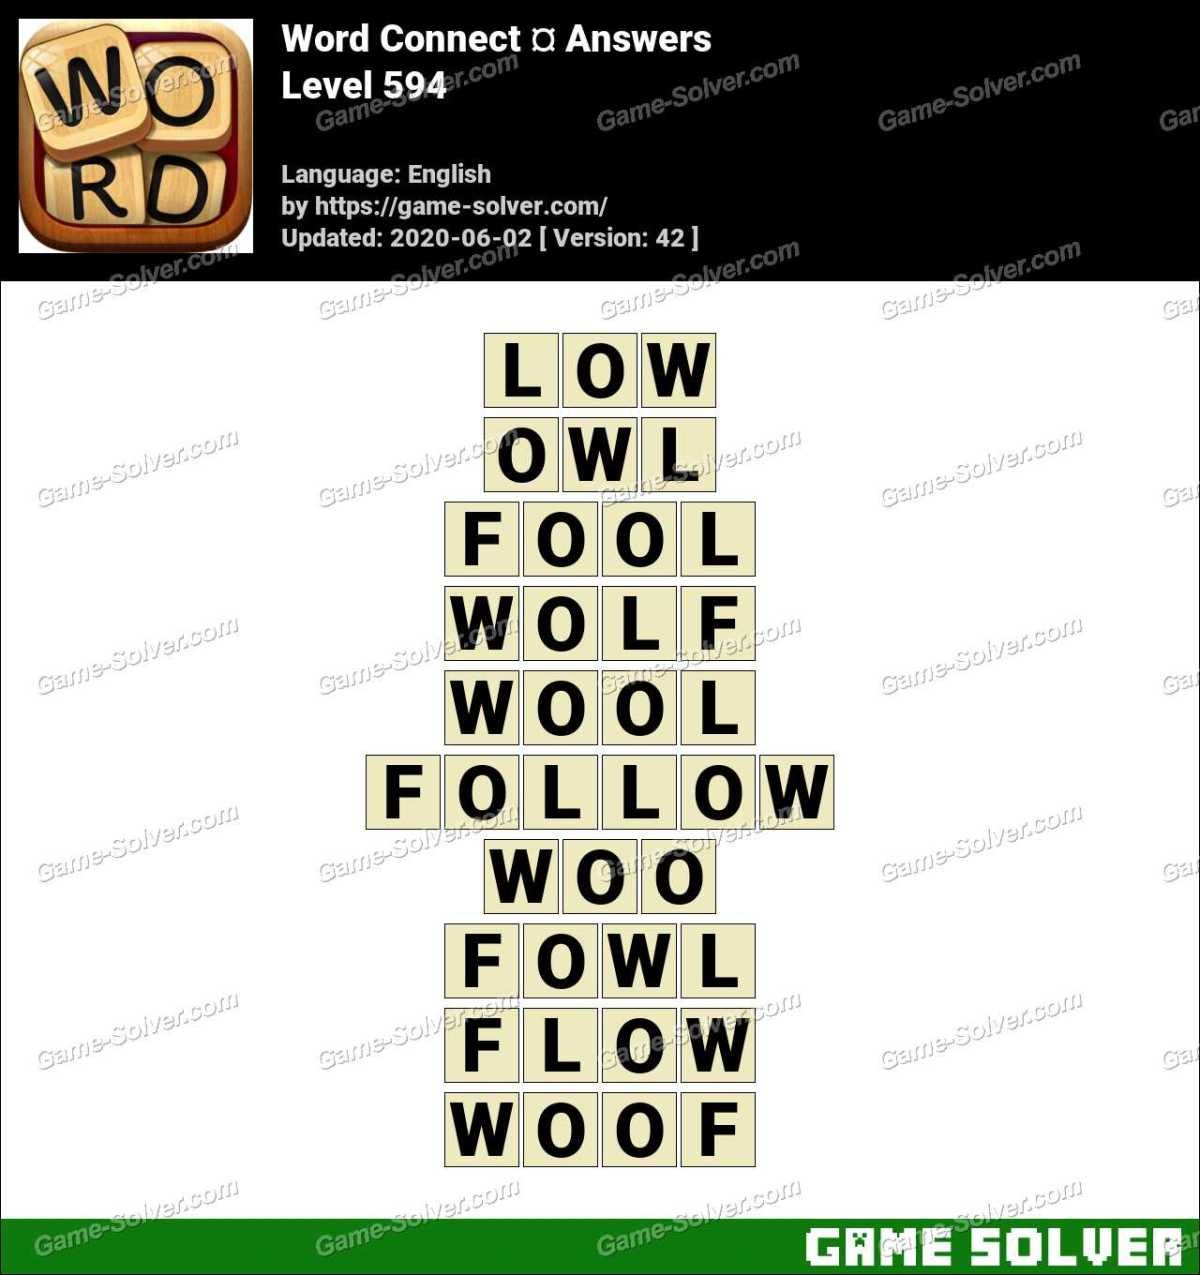 Word Connect Level 594 Answers